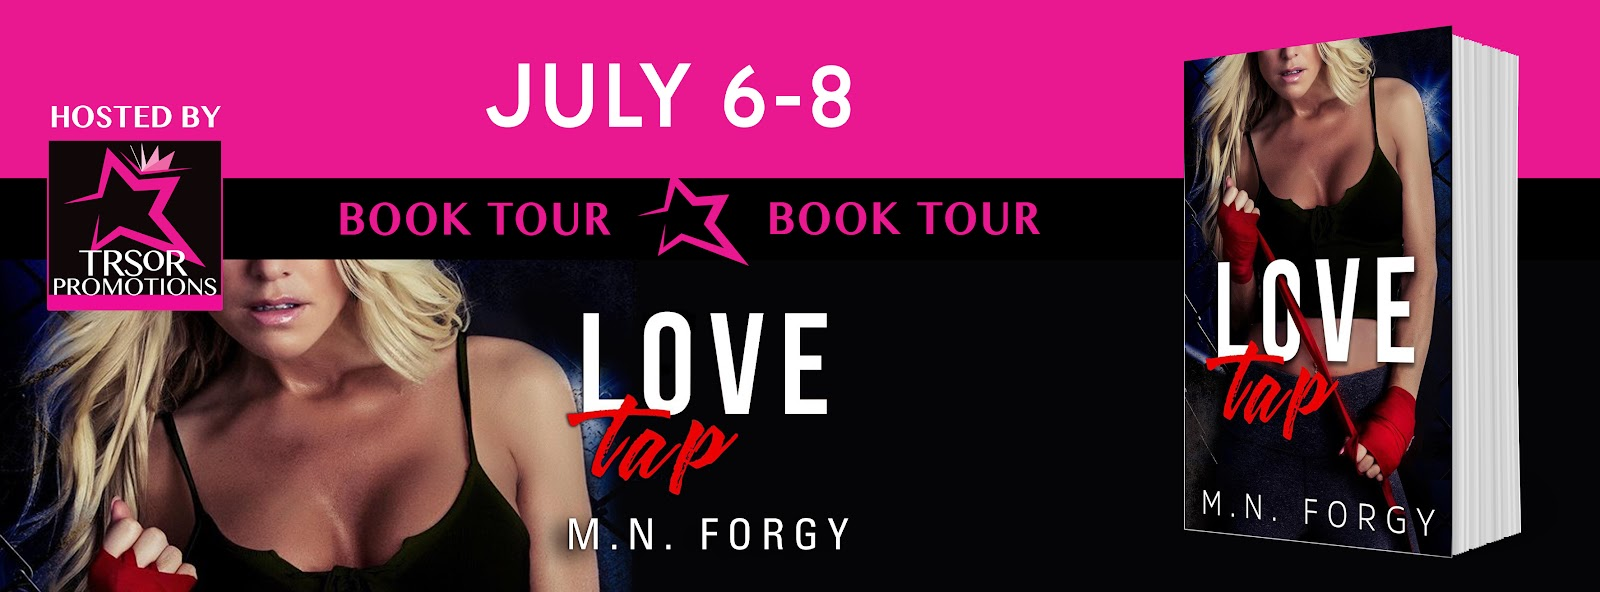 LOVETAP_BOOK_TOUR.jpg